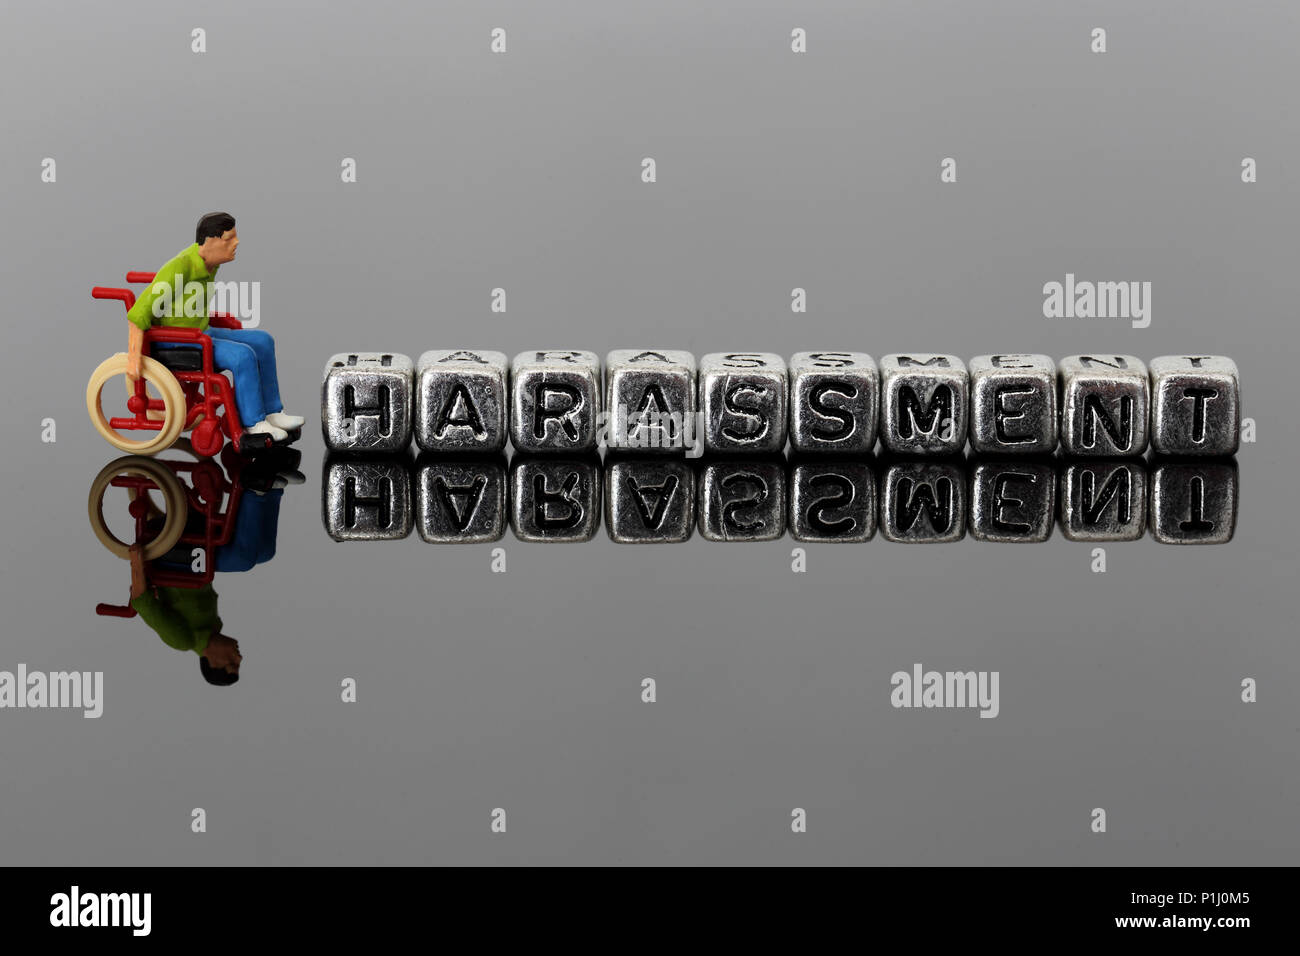 Miniature scale model man in a wheelchair with the word harassment on beads reflected on a dark background - Stock Image